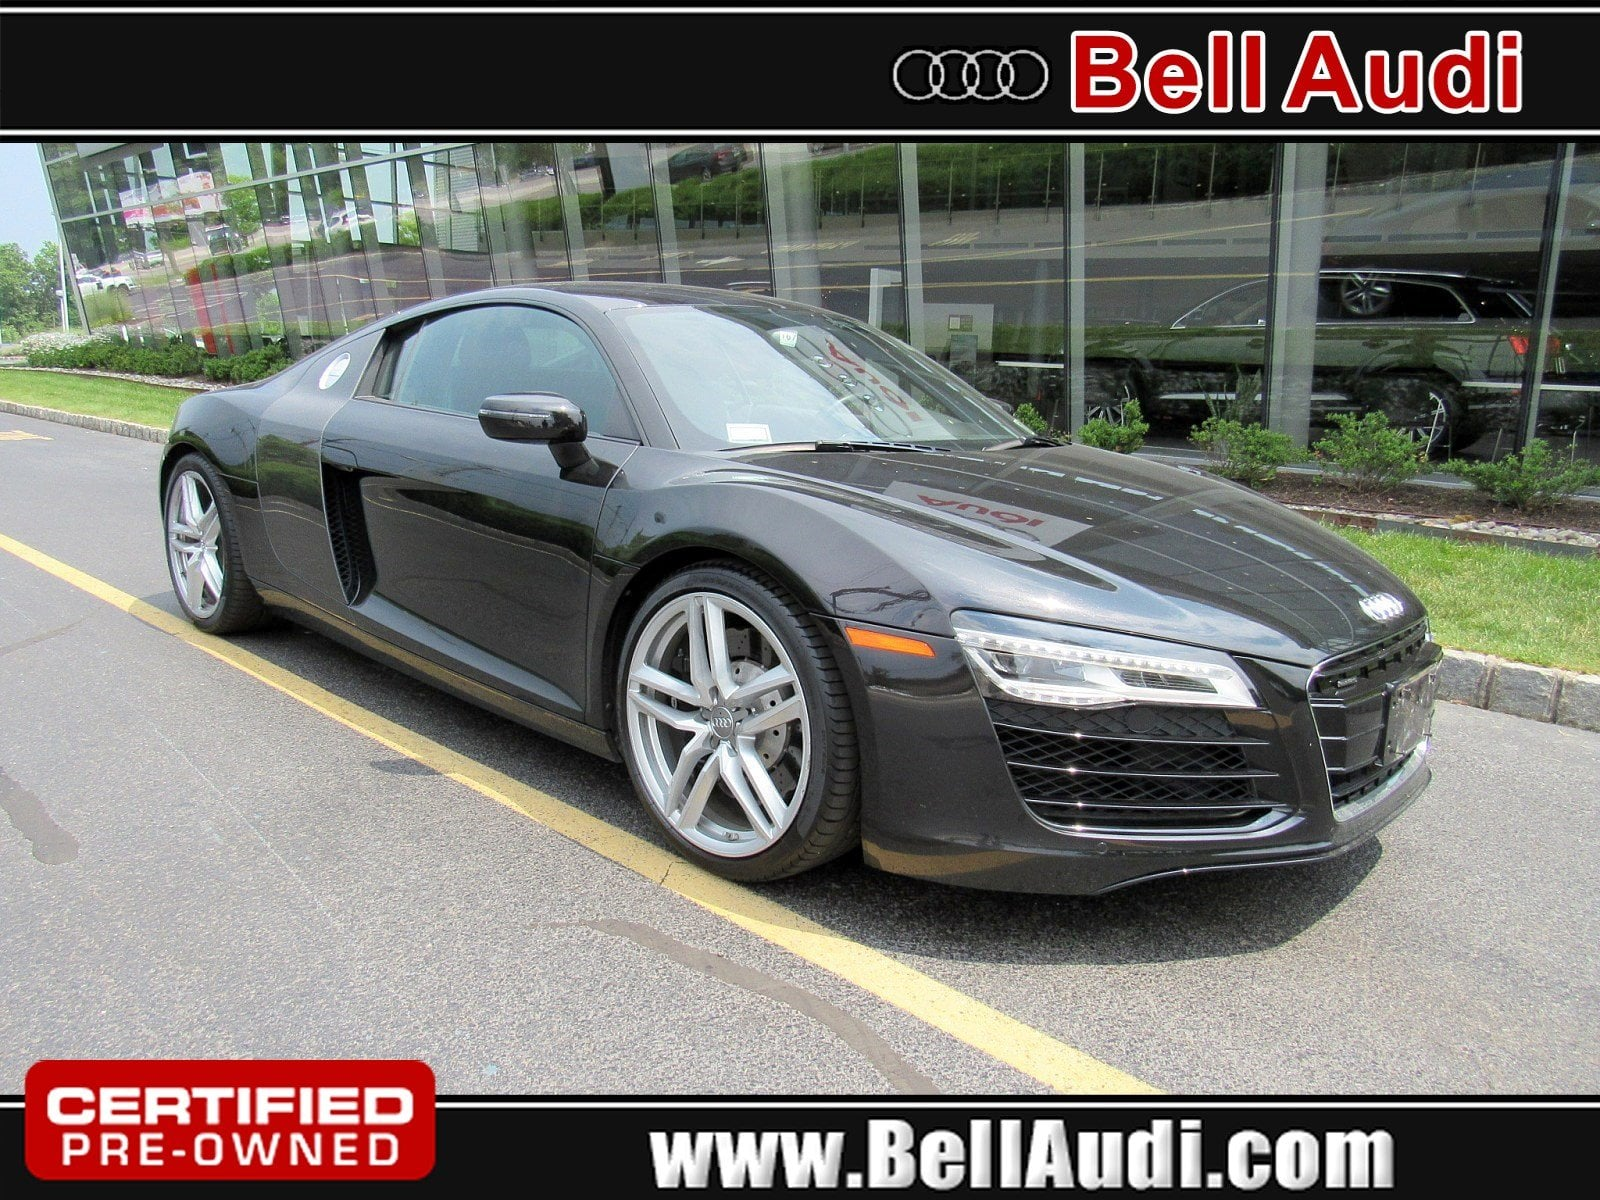 Photo Certified Pre-Owned 2015 Audi R8 4.2 Coupe for Sale in Edison, NJ